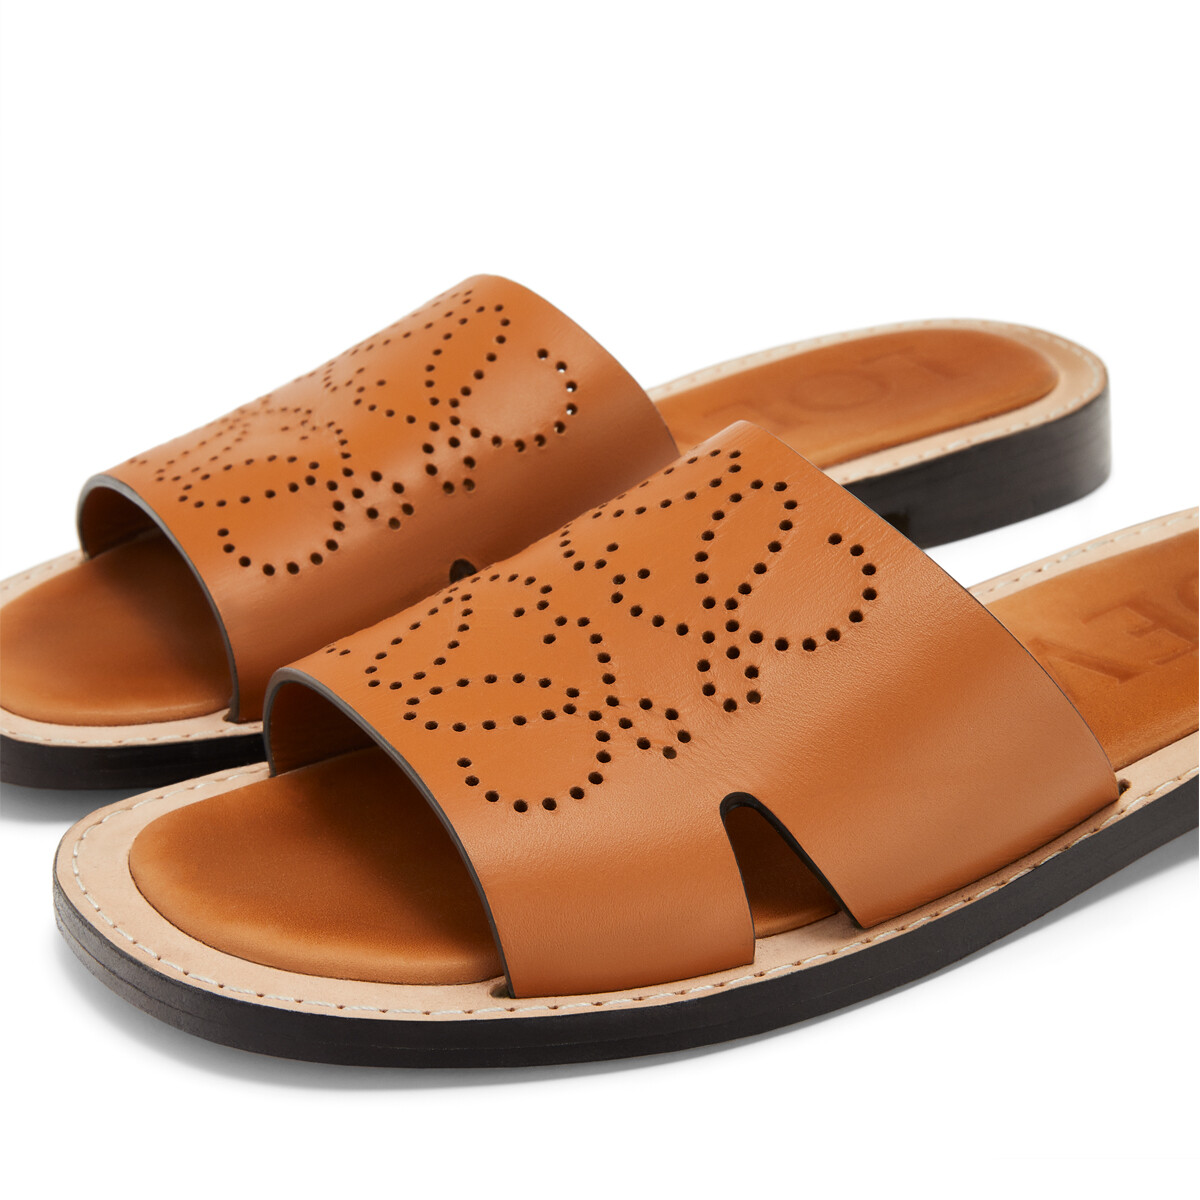 LOEWE Perforated Anagram Mule ライトキャラメル front